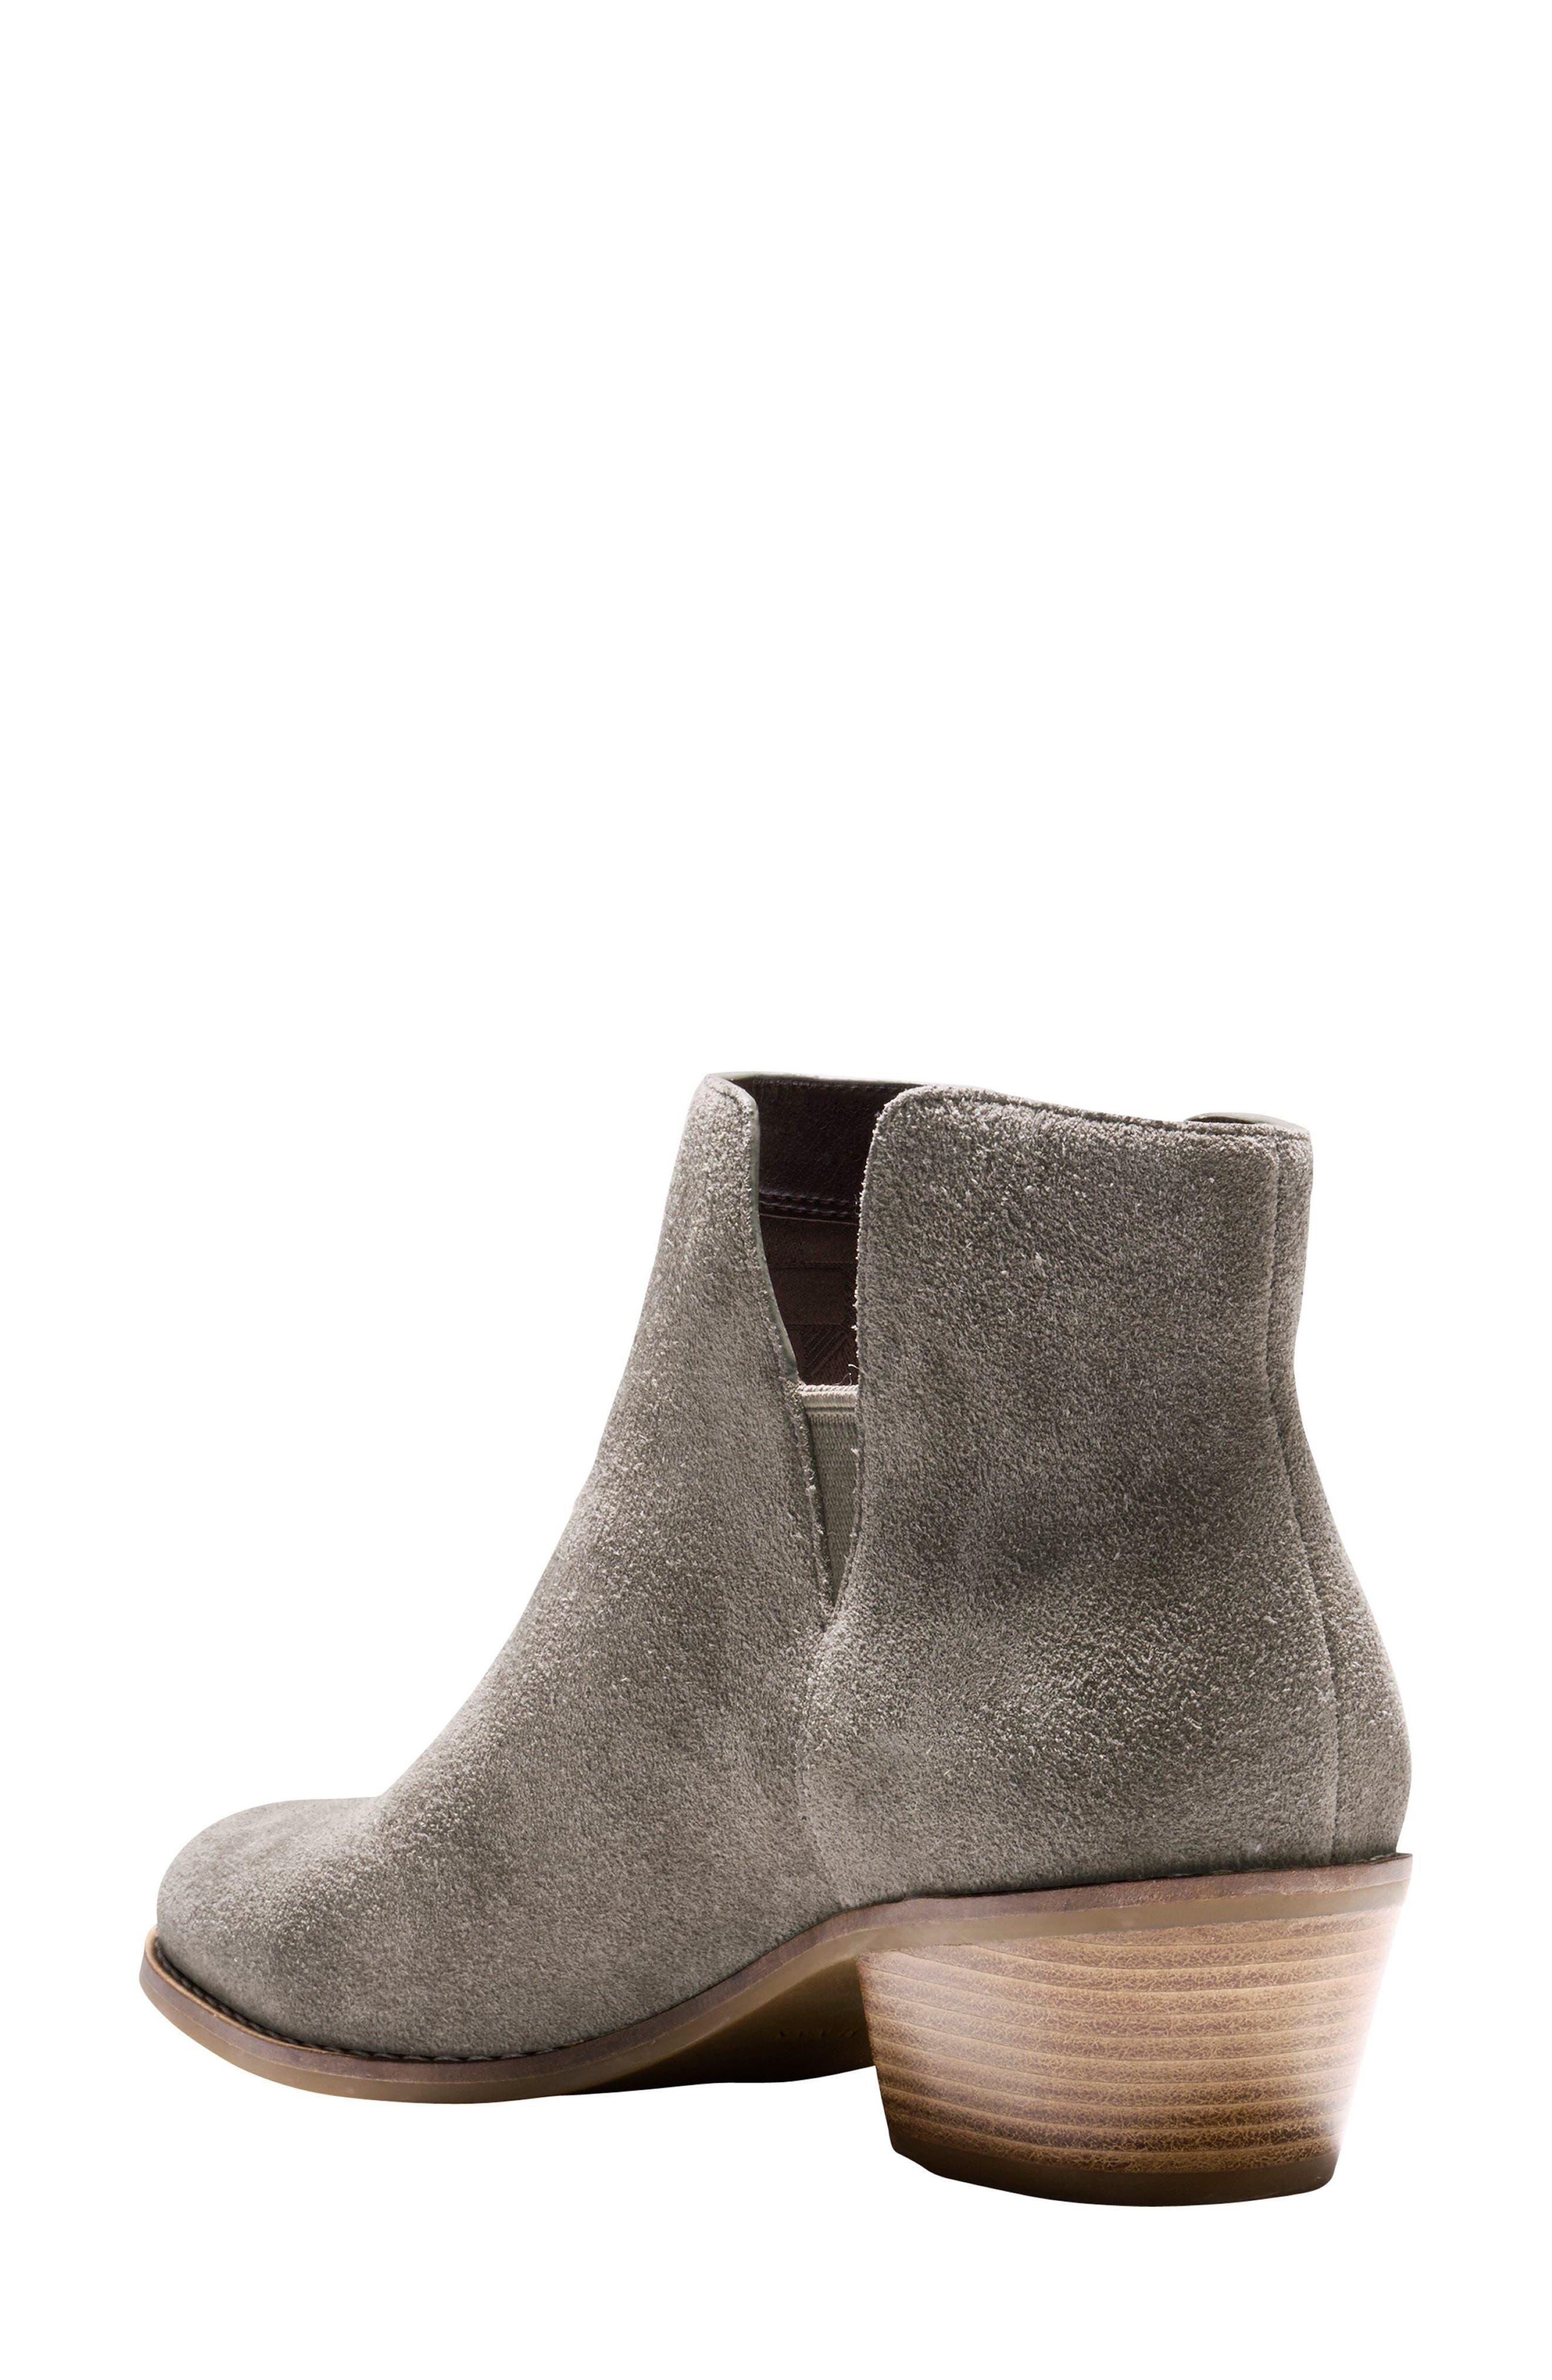 'Abbot' Chelsea Boot,                             Alternate thumbnail 8, color,